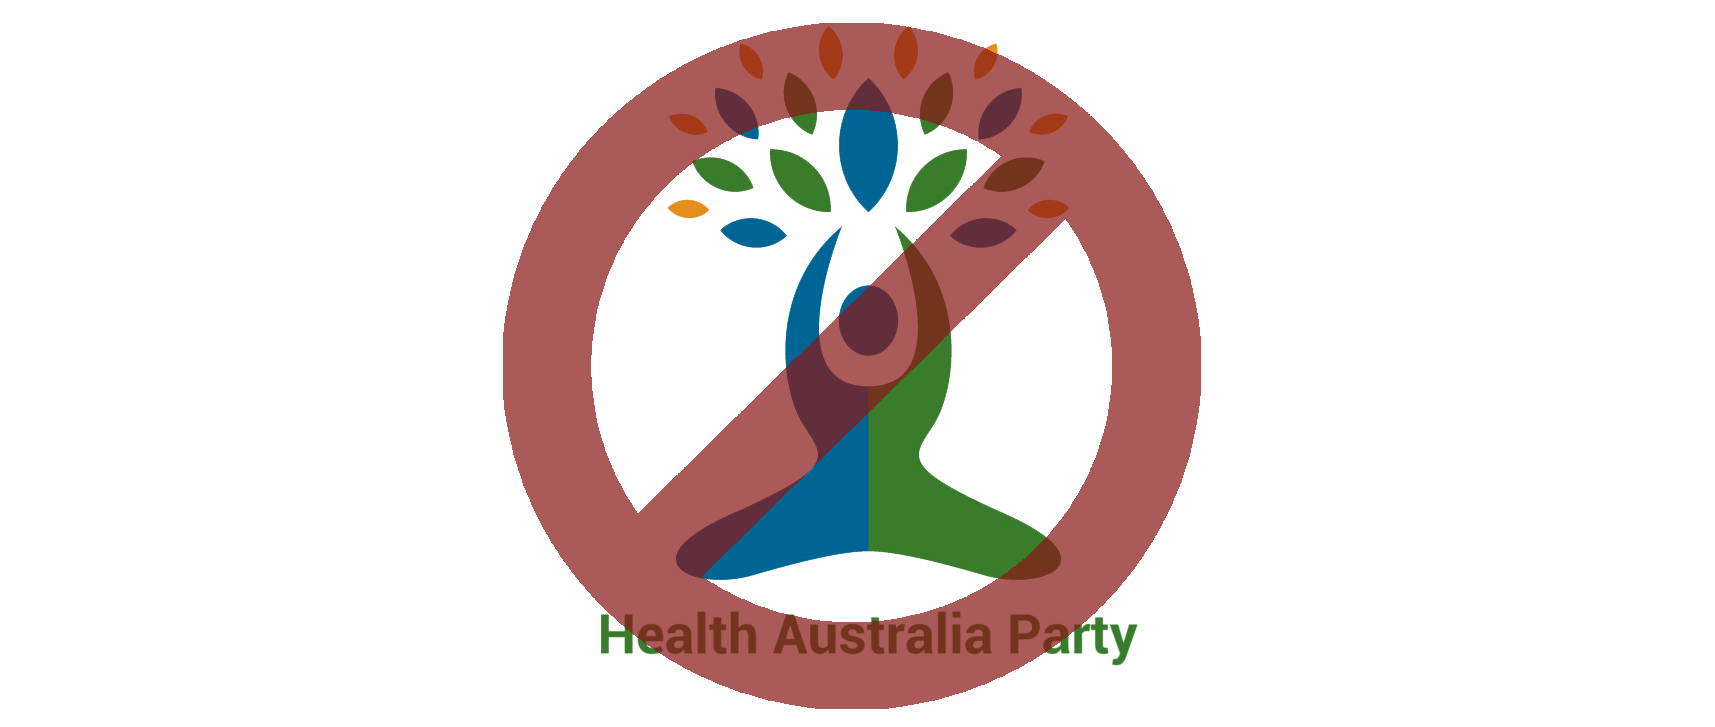 Health-Australia-Party-Narrow2.png